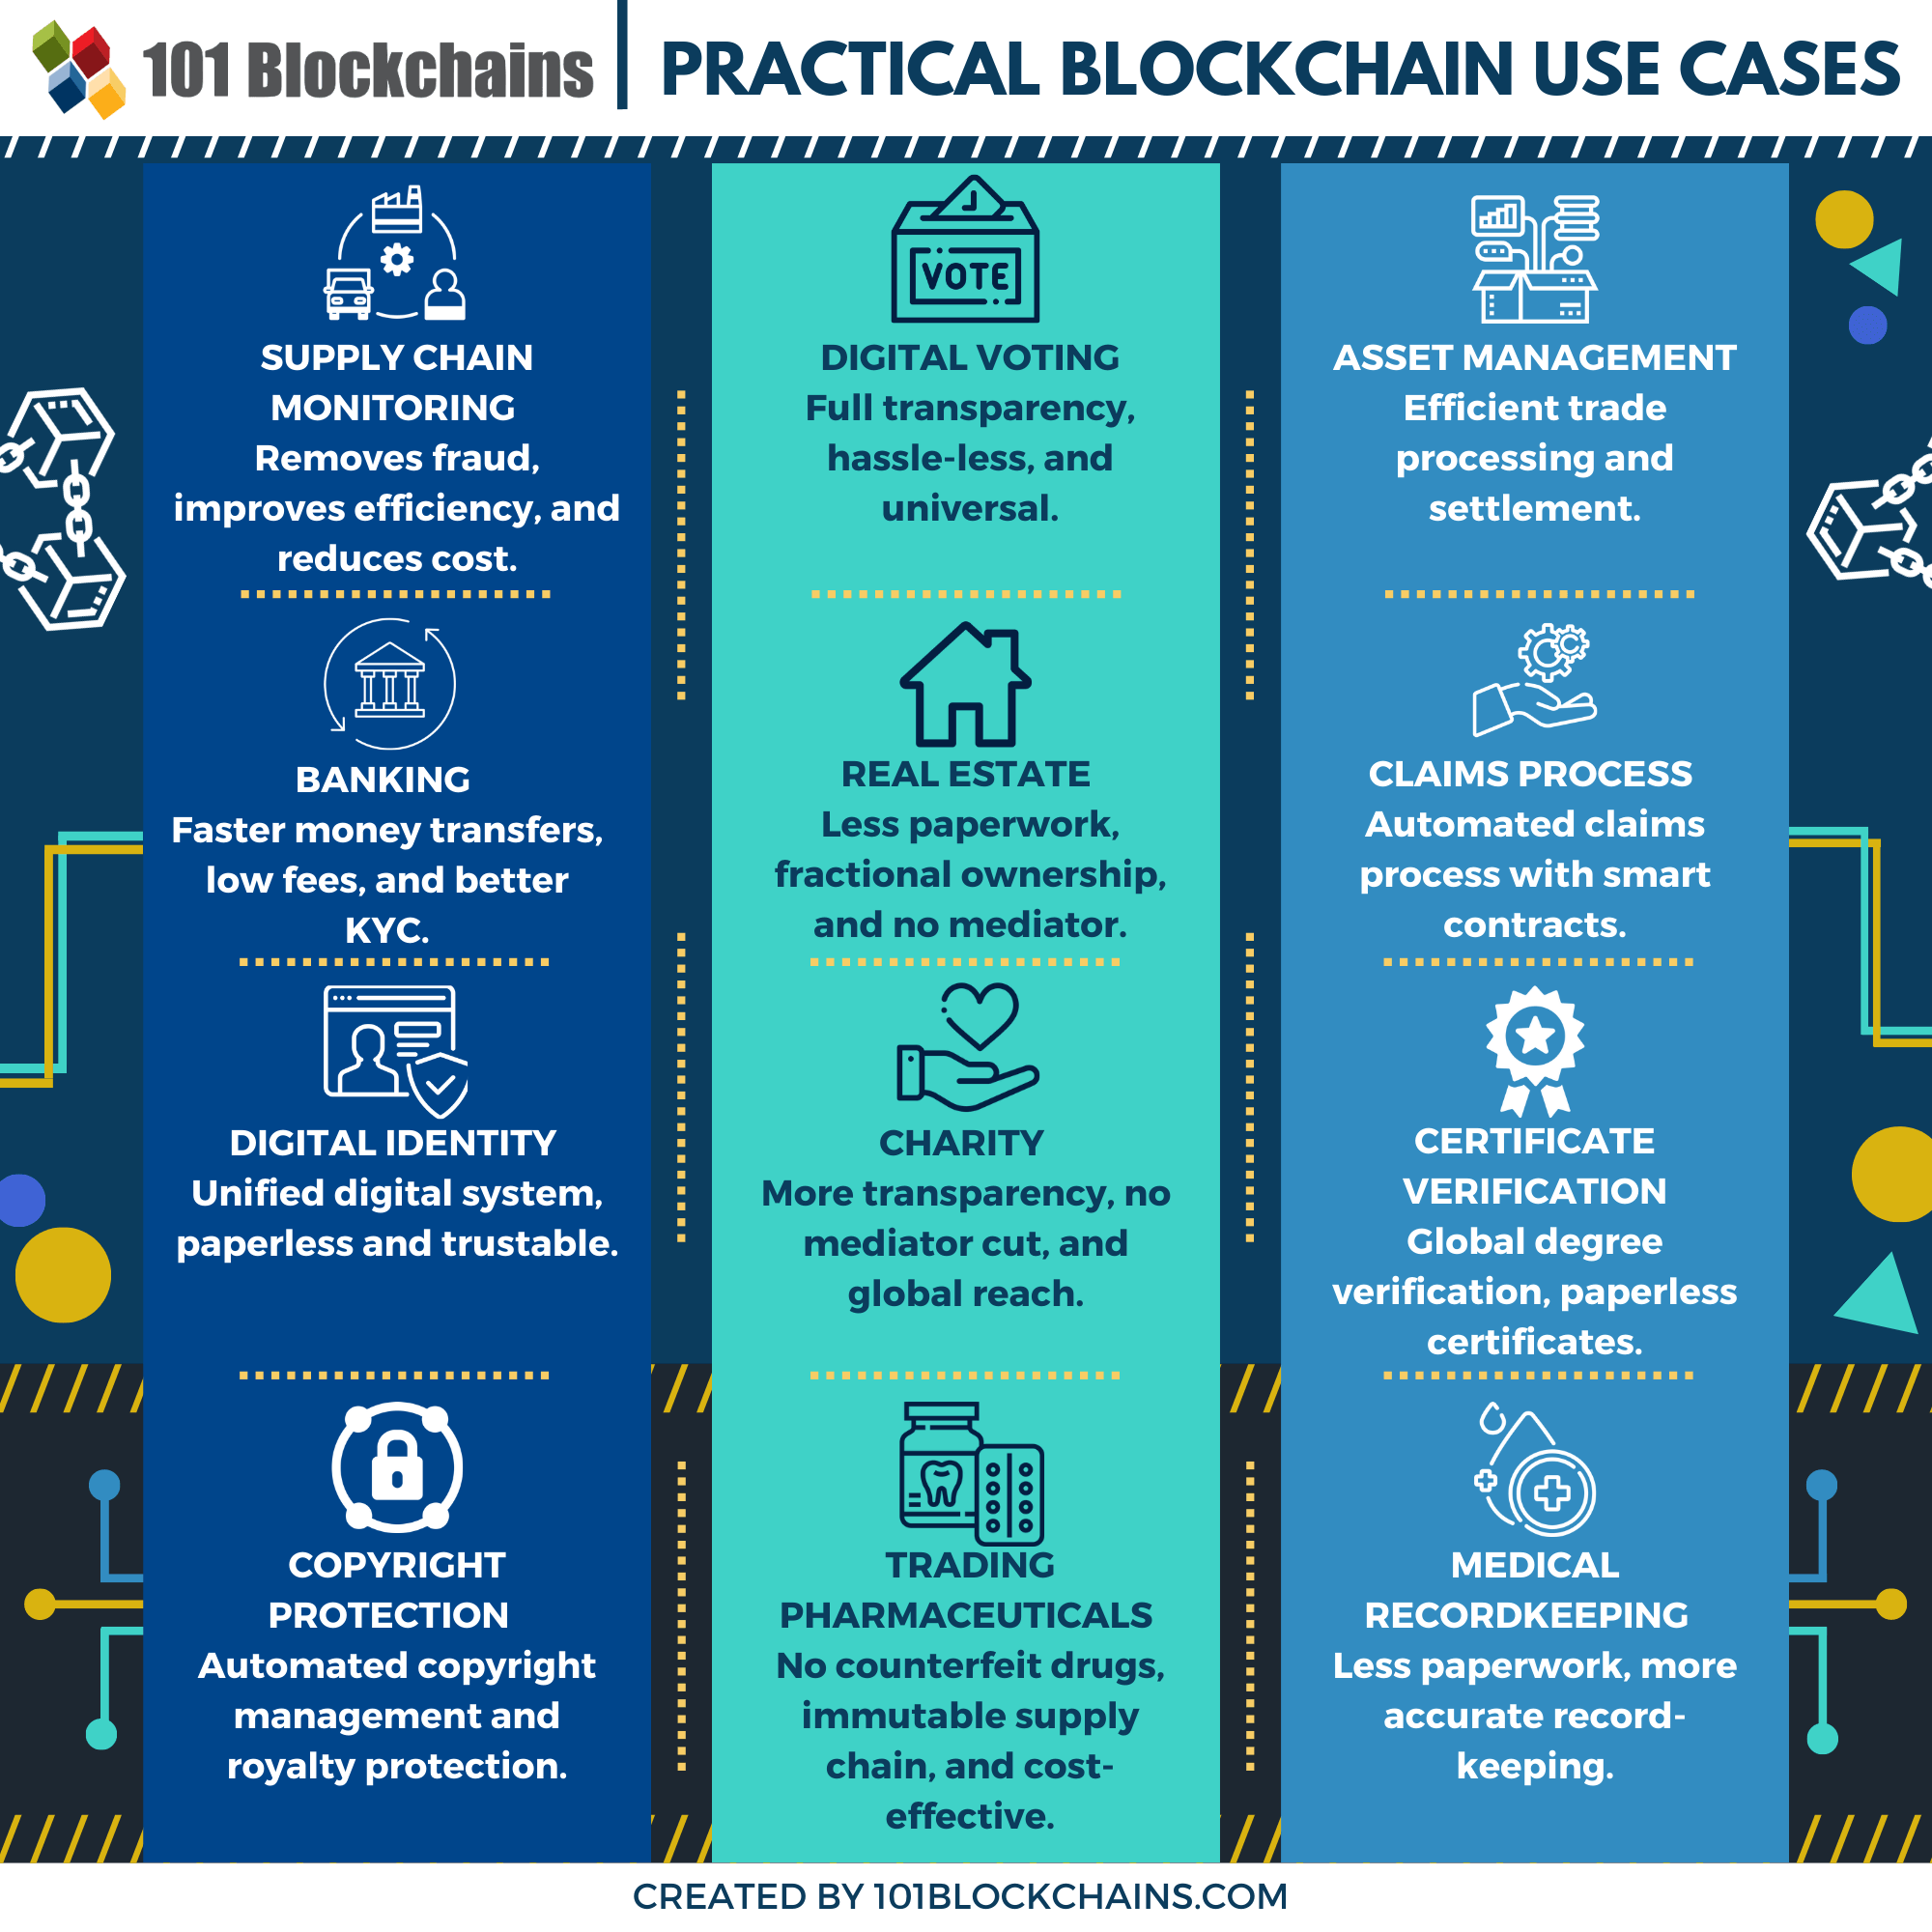 practical blockchain use cases